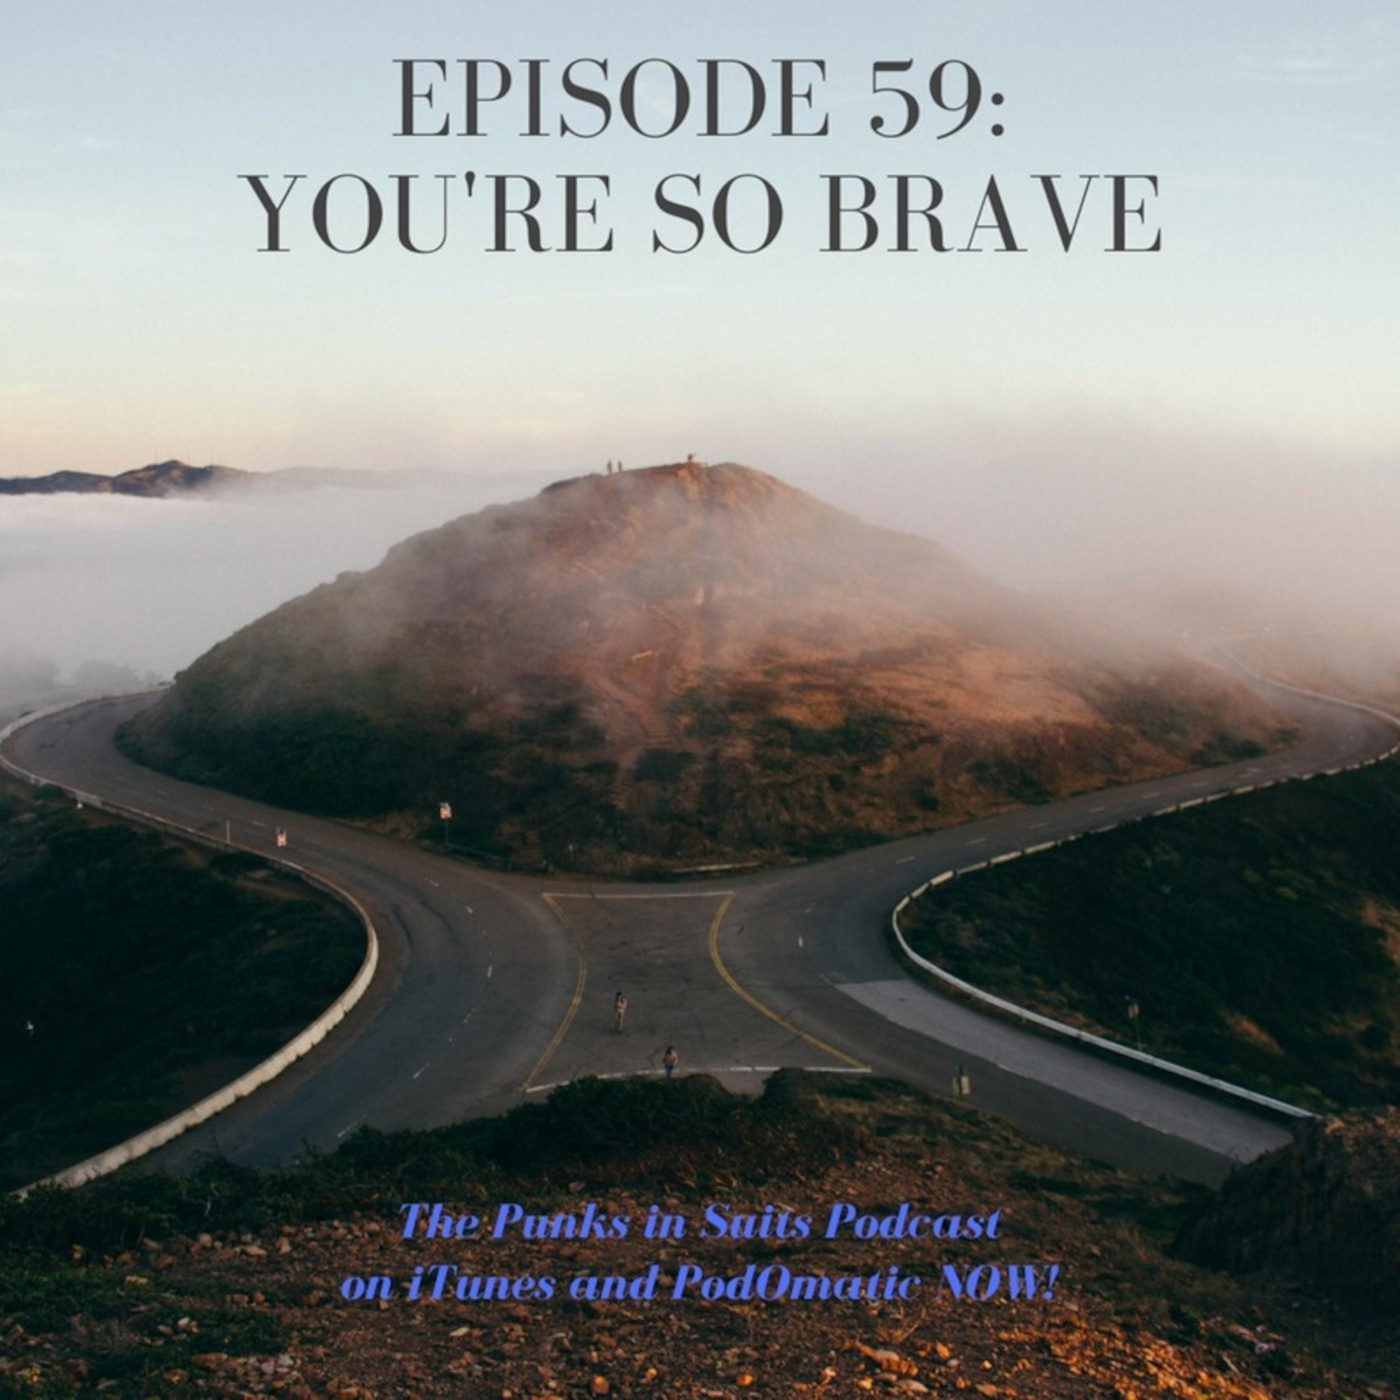 Episode 59: You're So Brave!